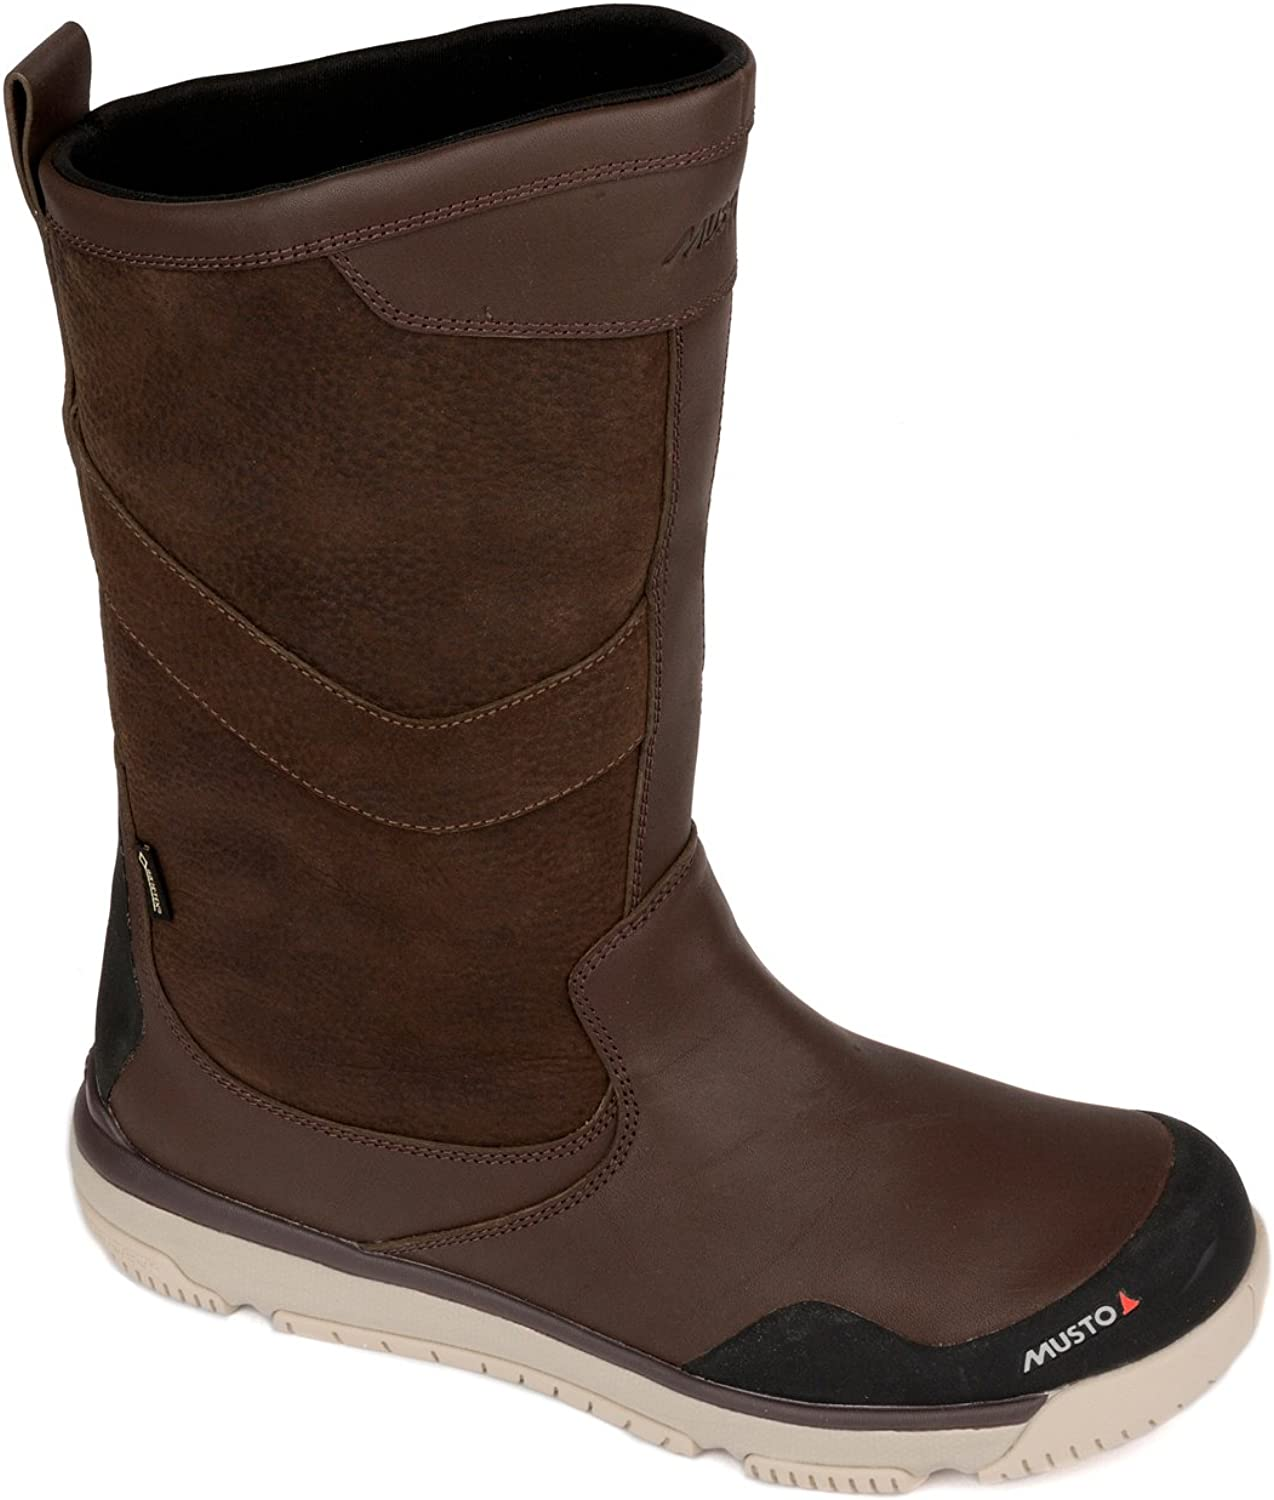 bff97efa6fe Musto Gore-Tex Leather Sailing Boot 2019 2019 2019 Dark Brown 3fbdc4 ...